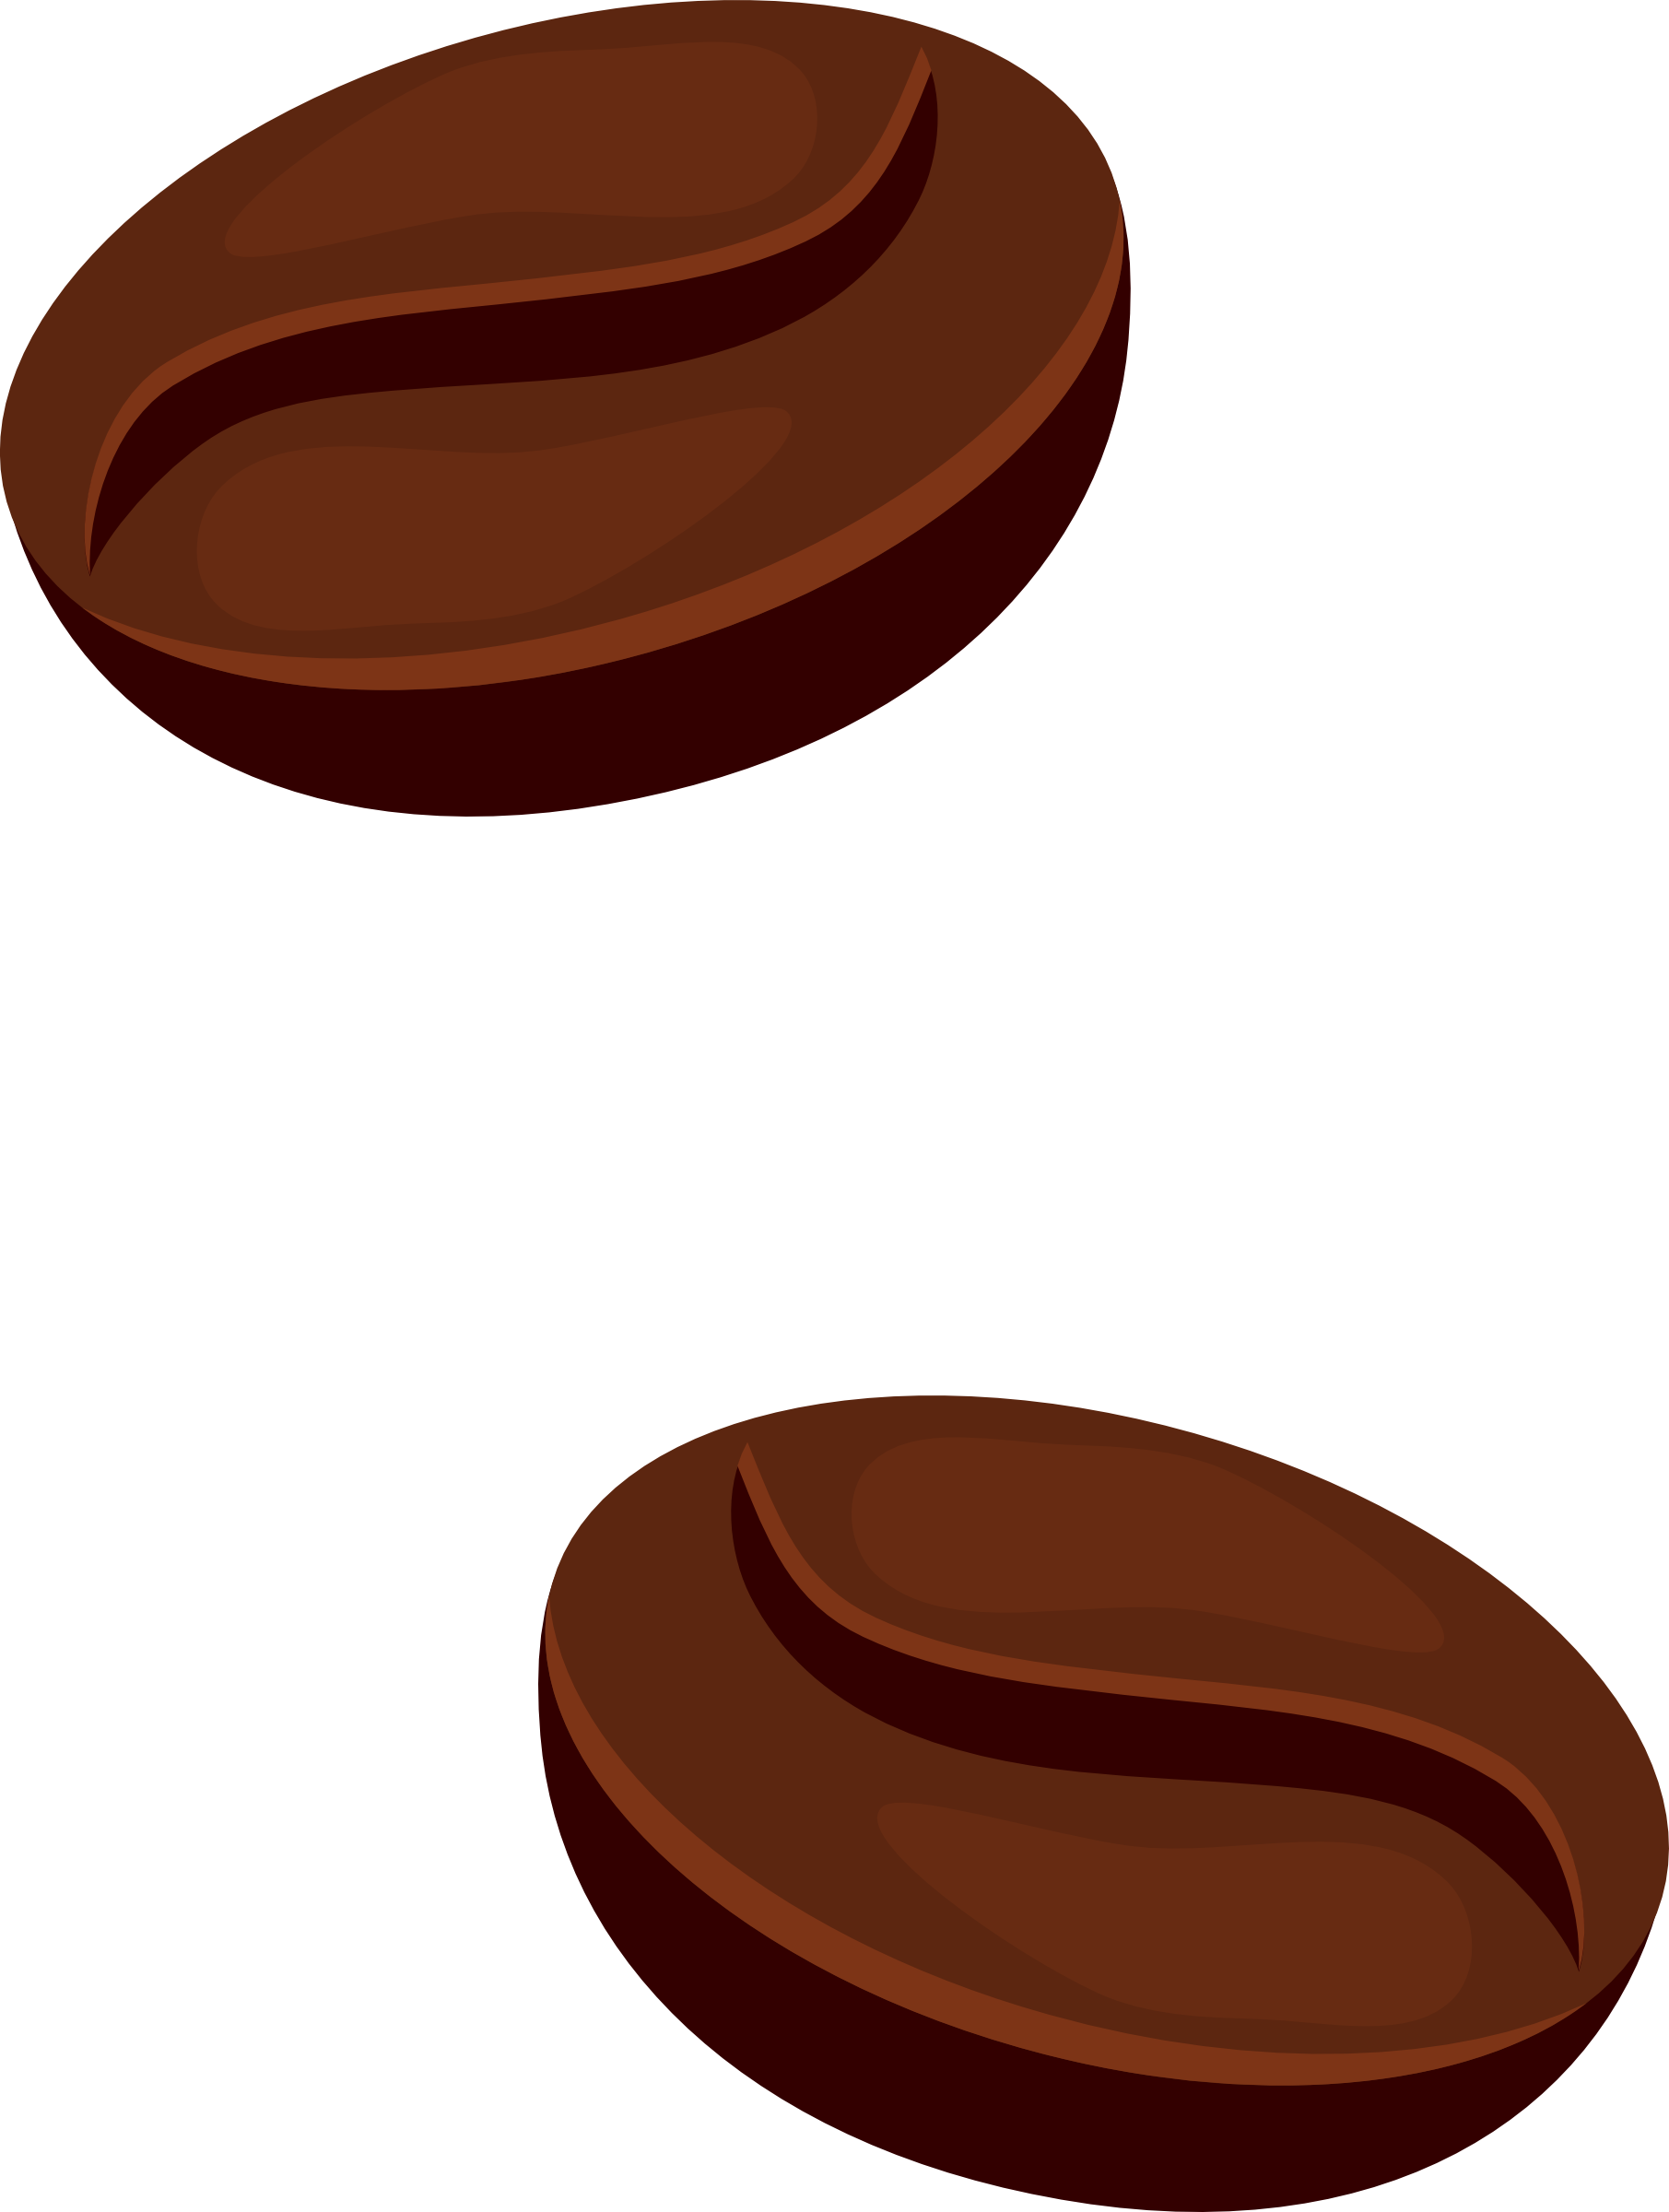 Beans vector soya plant. Coffee images clipart panda